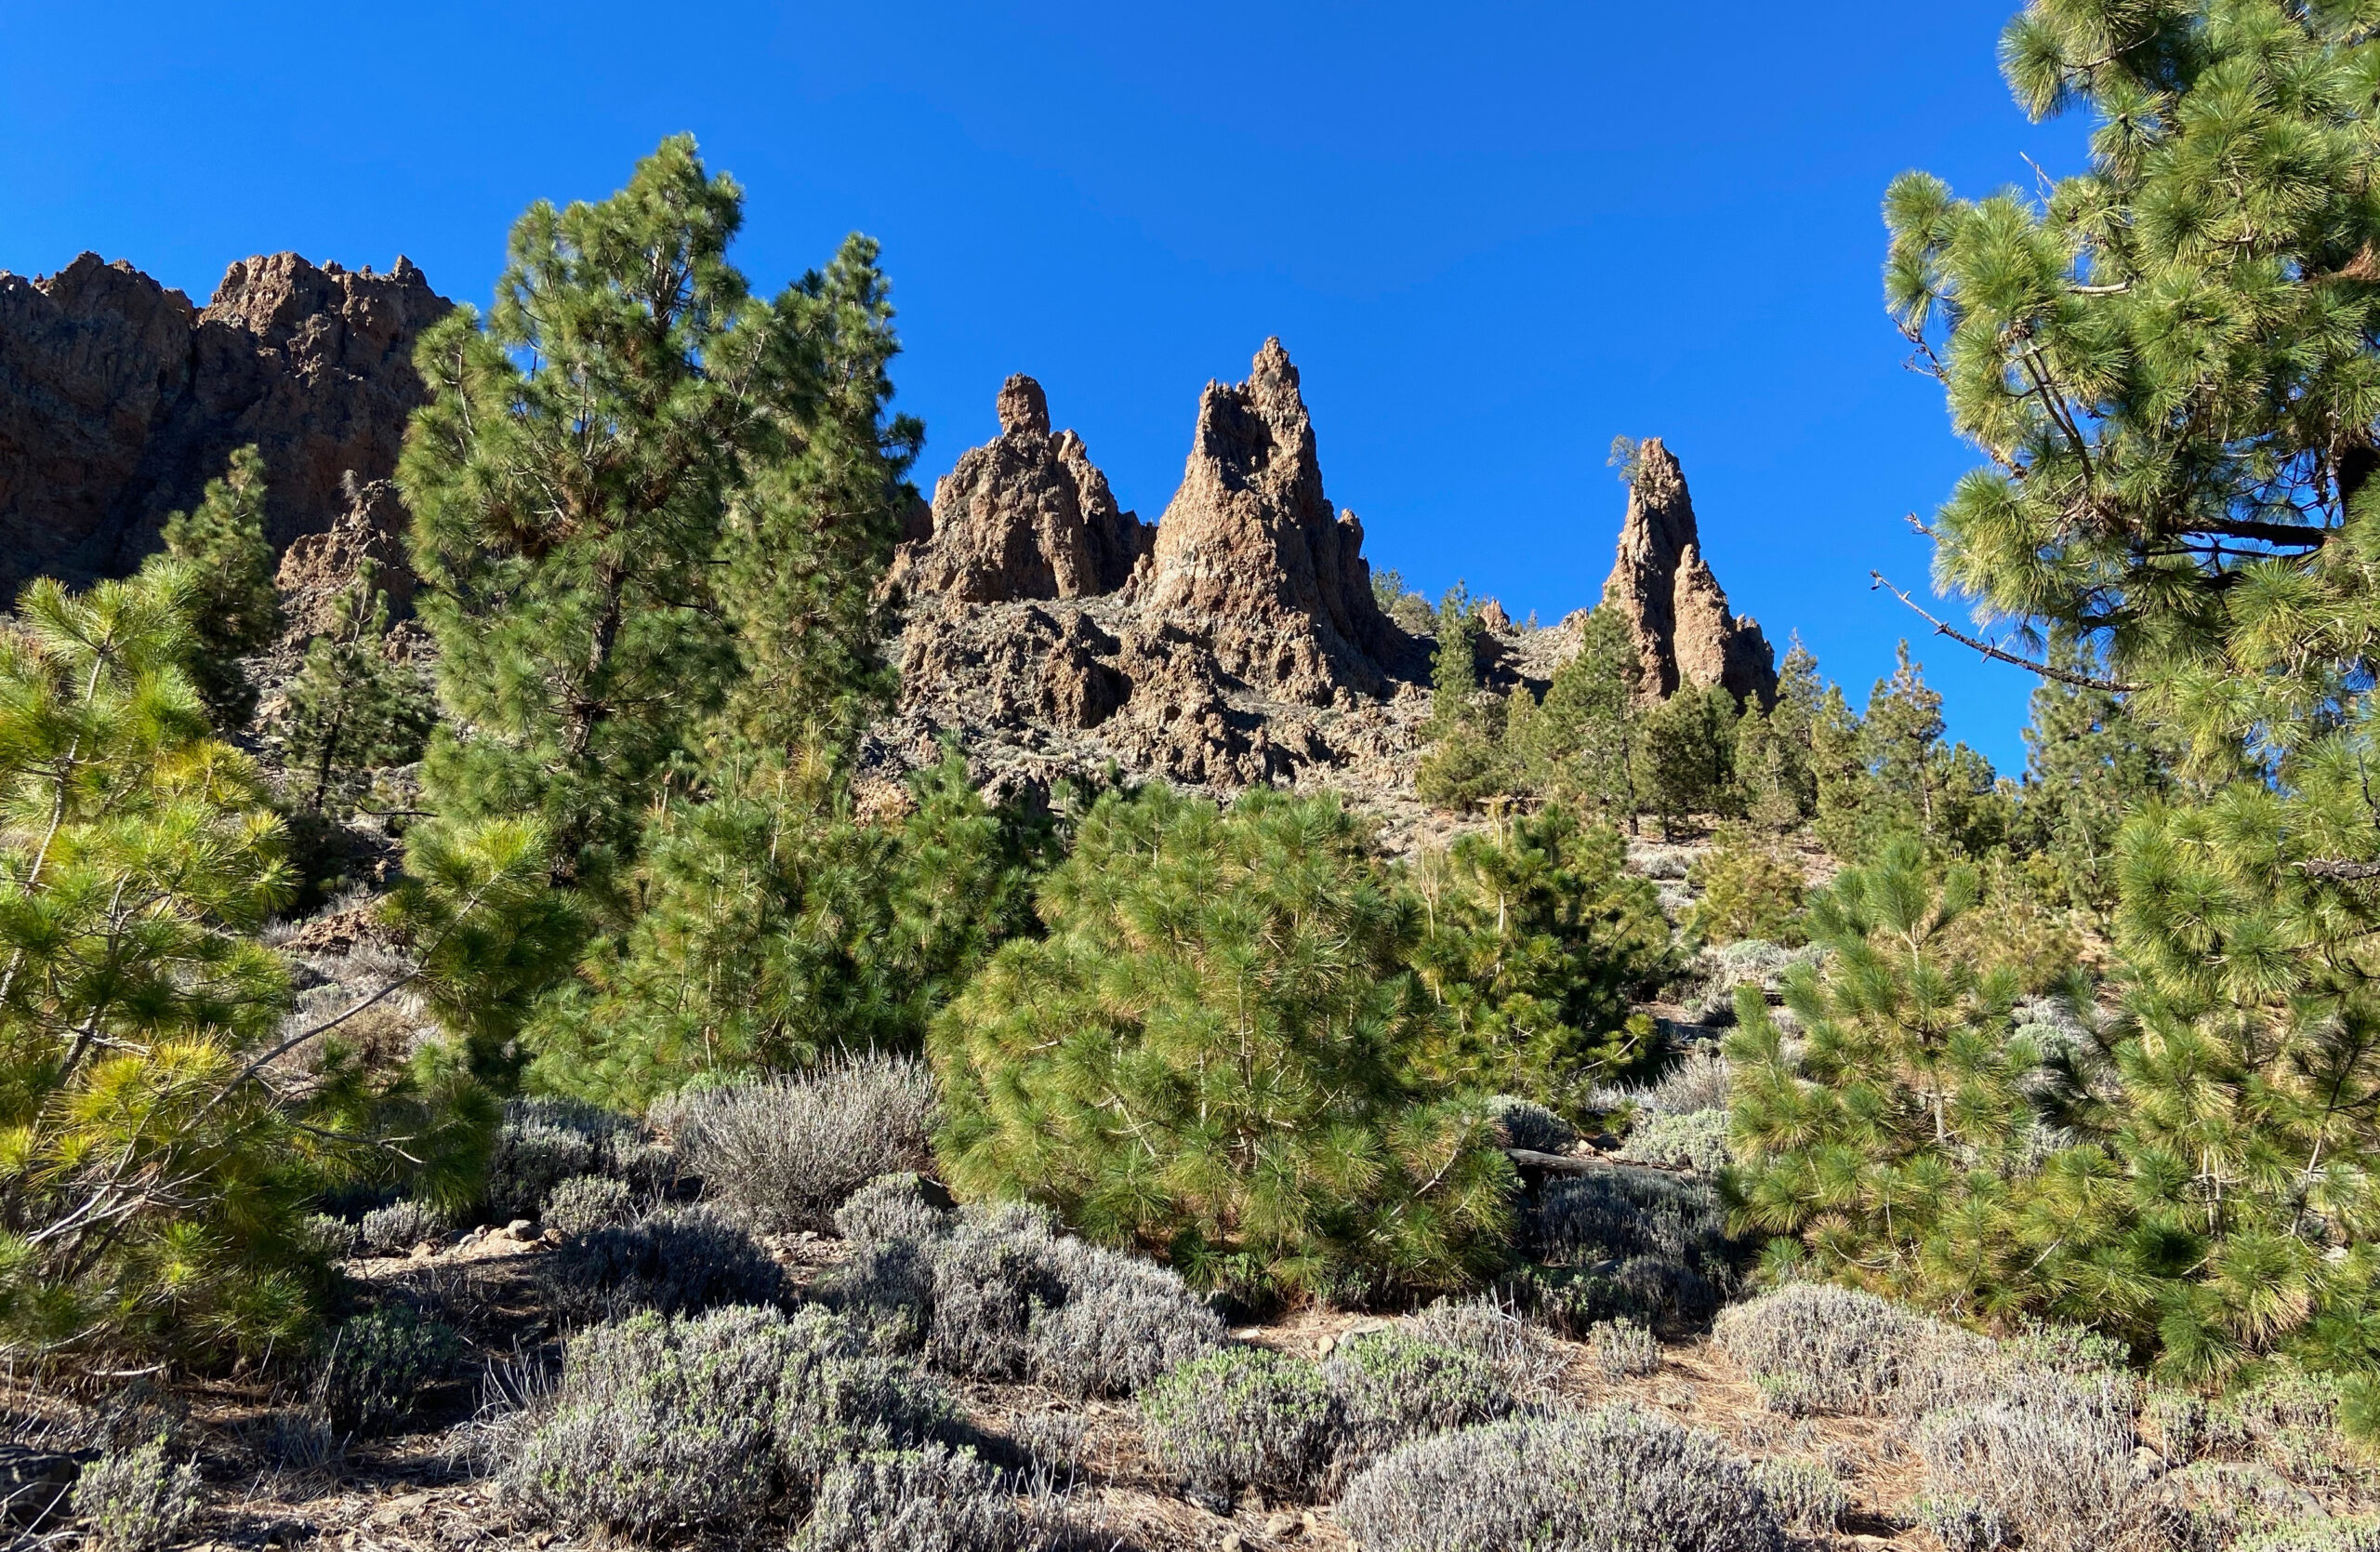 Green pines, jagged rocks and blue skies in the national park